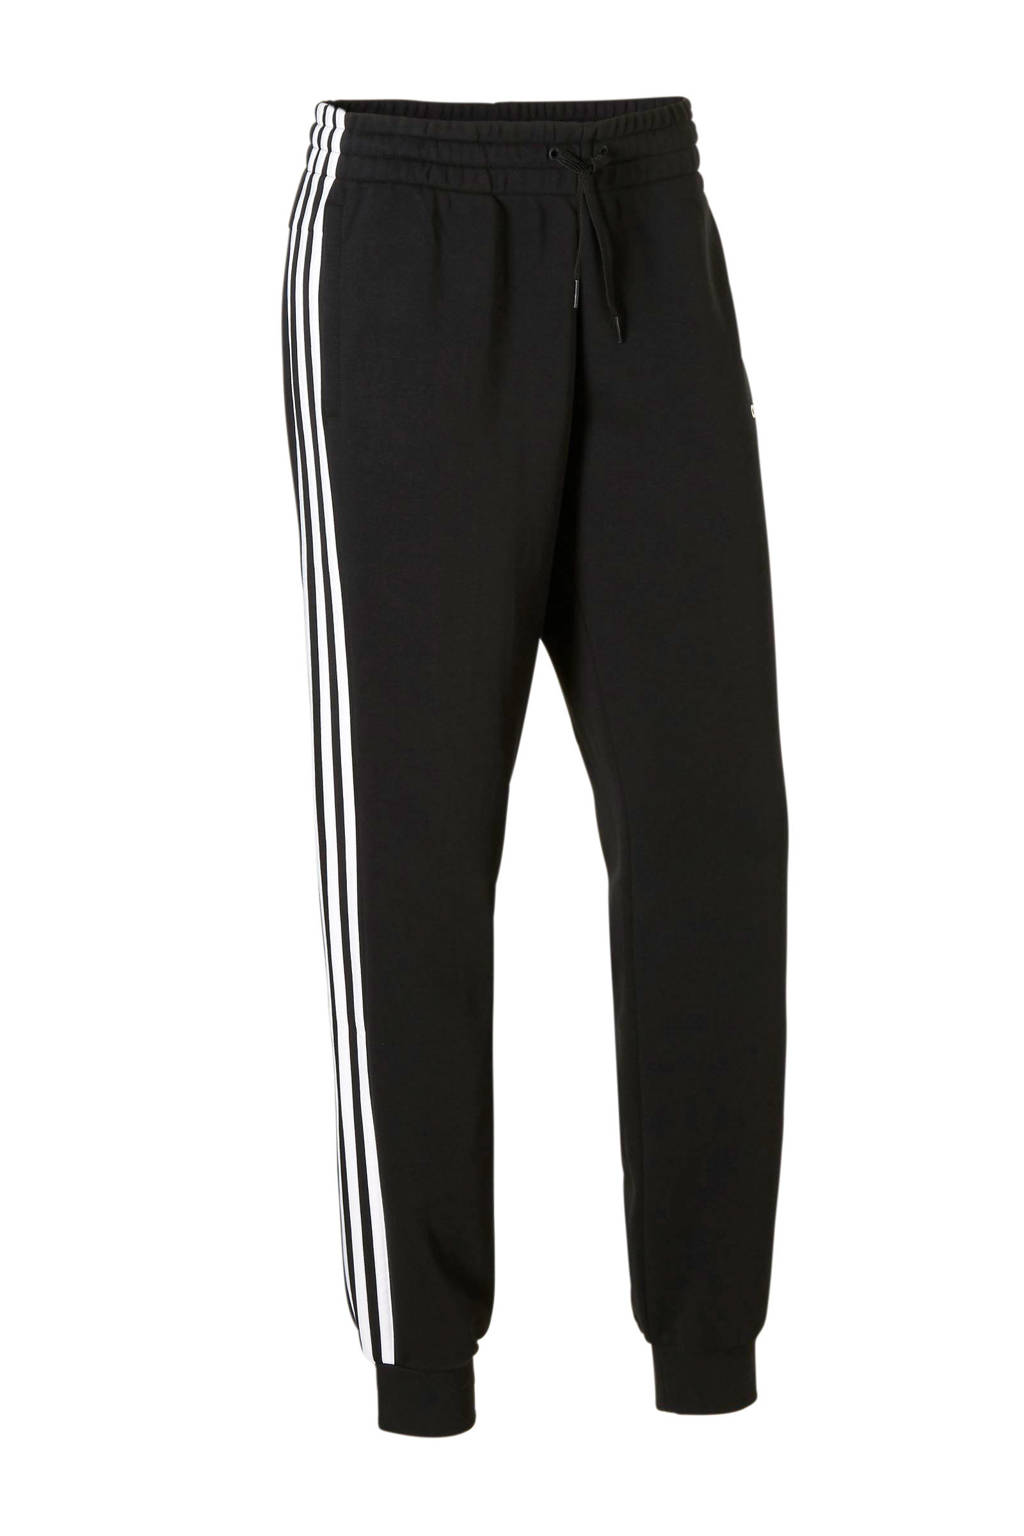 adidas performance joggingbroek zwart, Zwart/wit